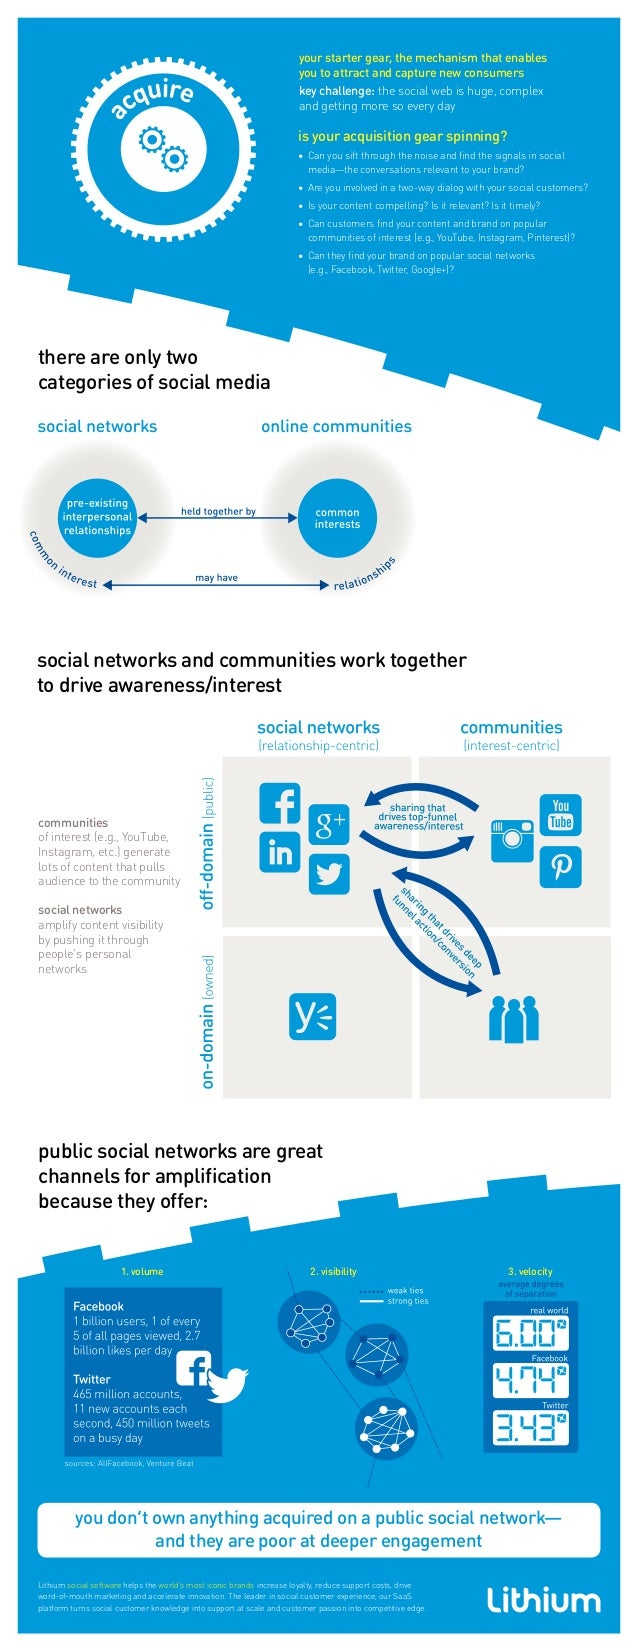 communities of interest (e.g., YouTube, Instagram, etc.) generate lots of content that pulls audience to the community soc...